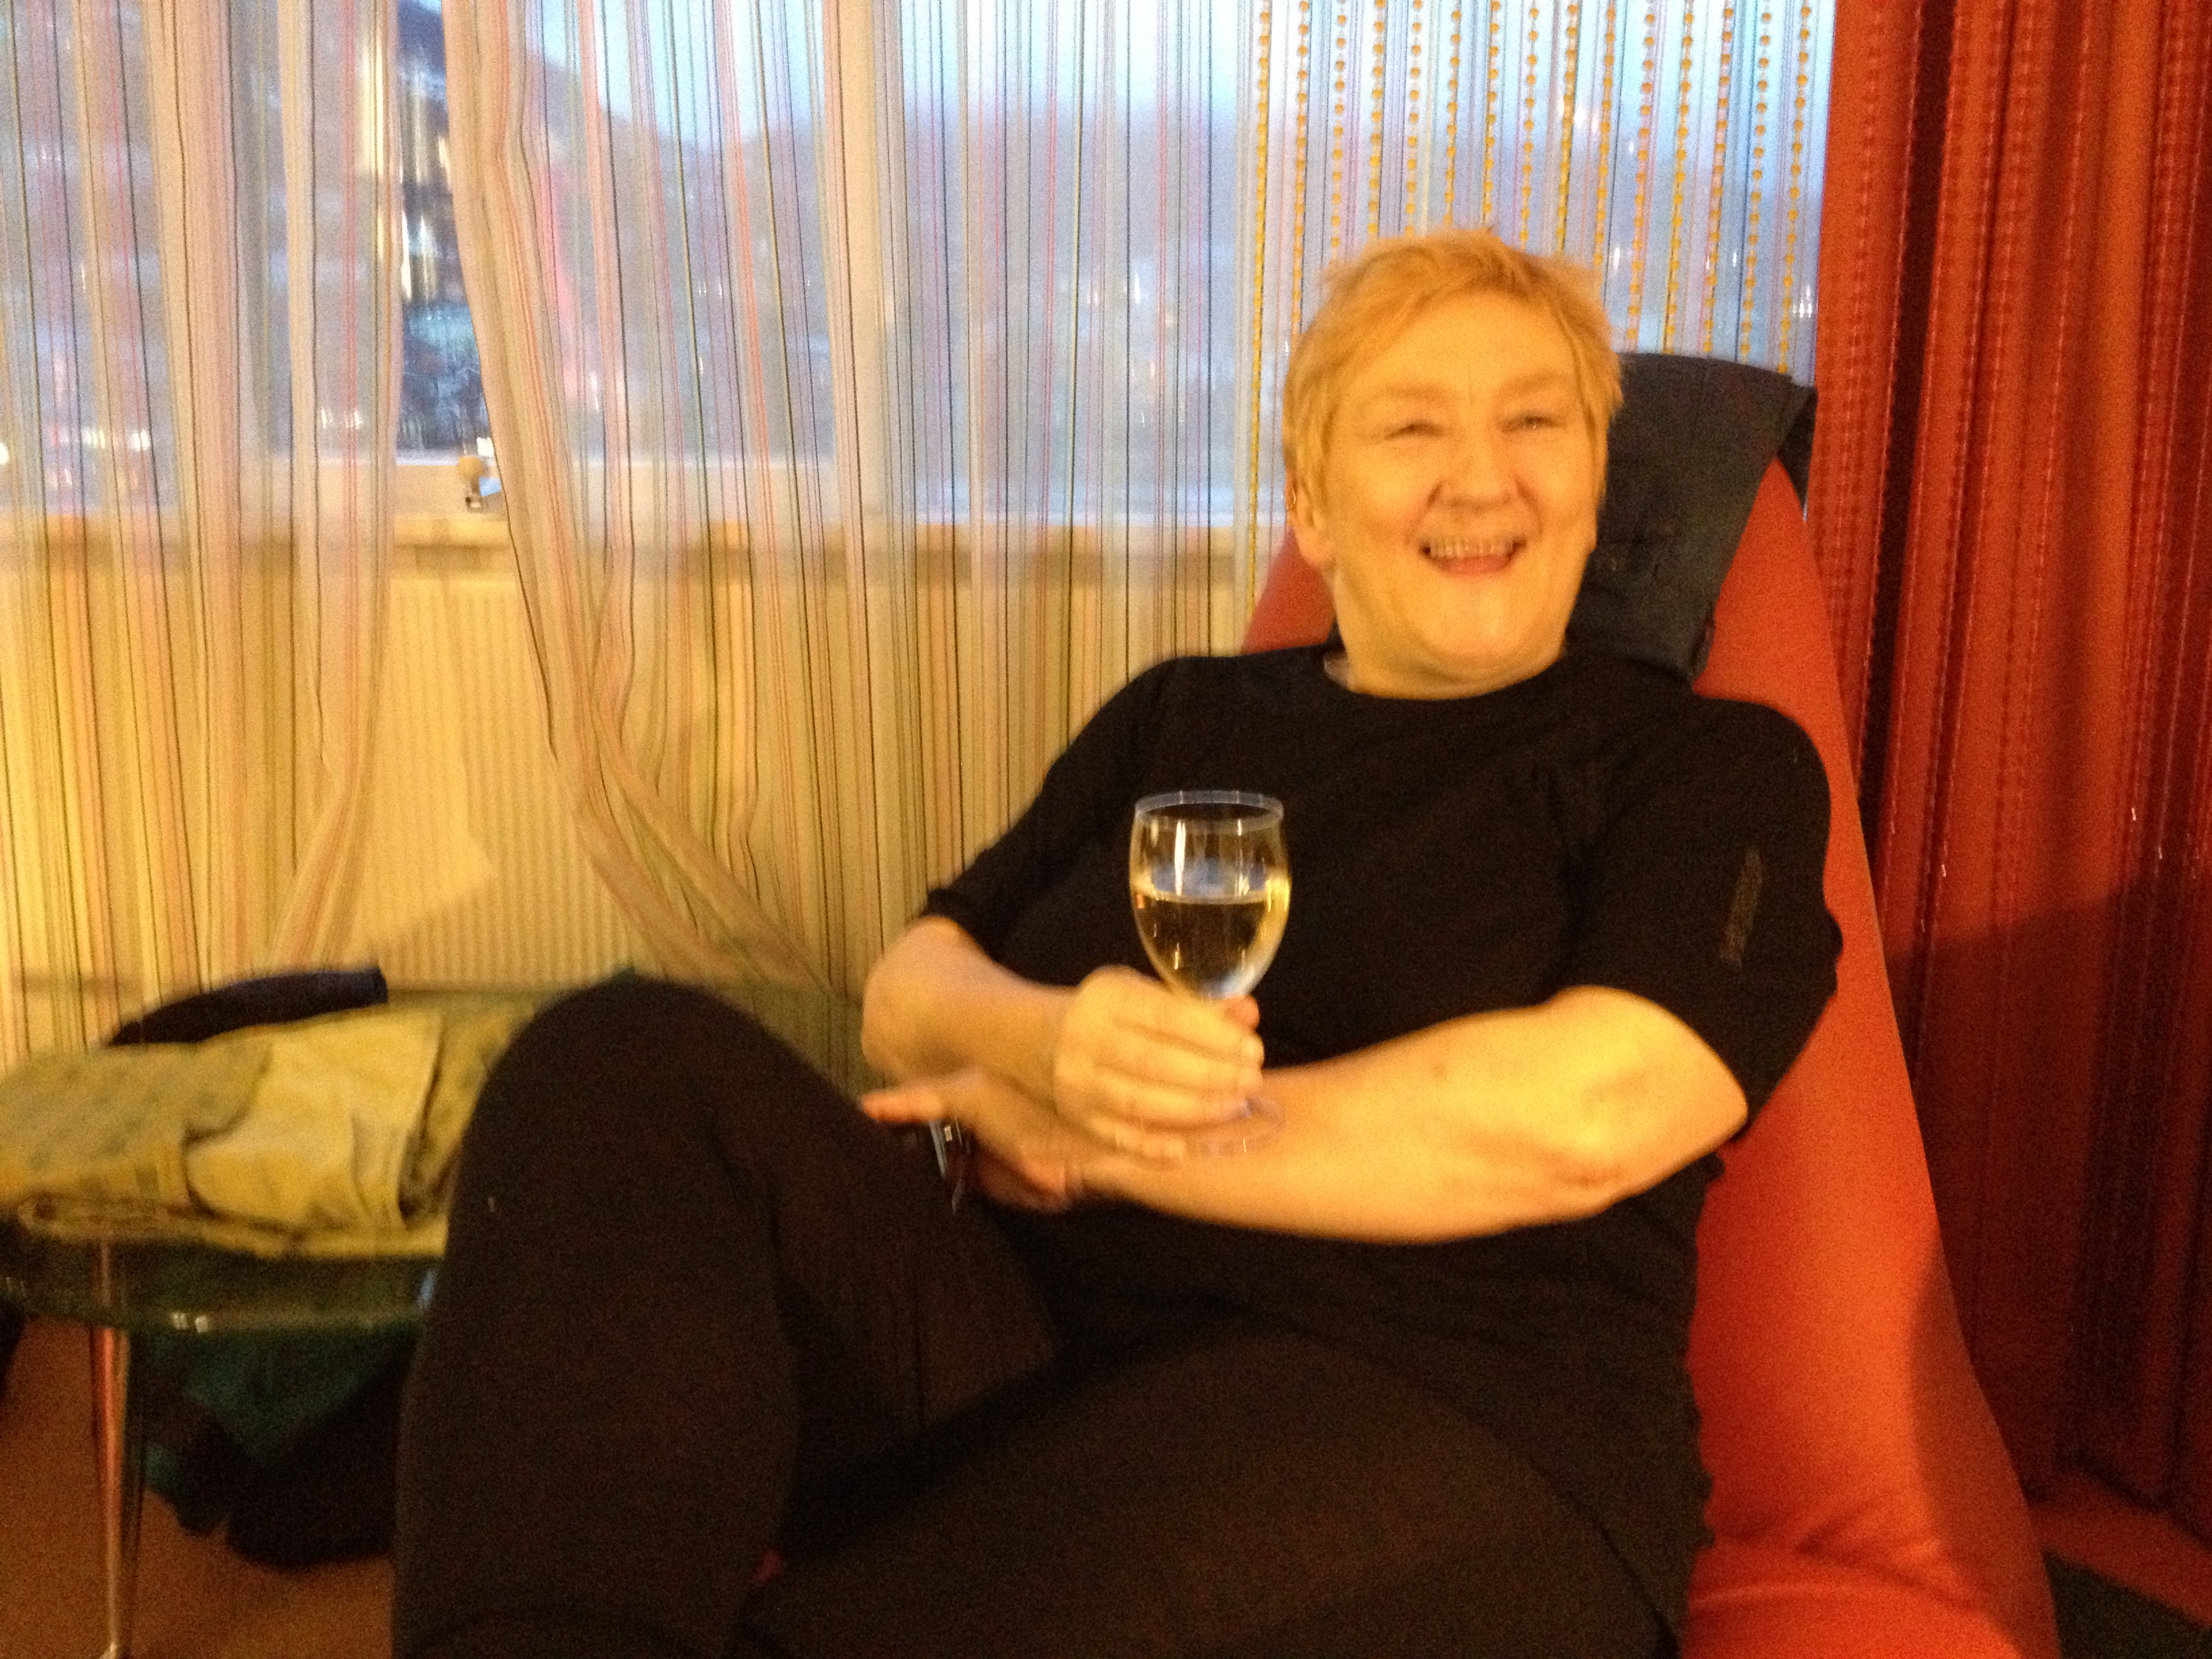 A relaxing glass of champagne